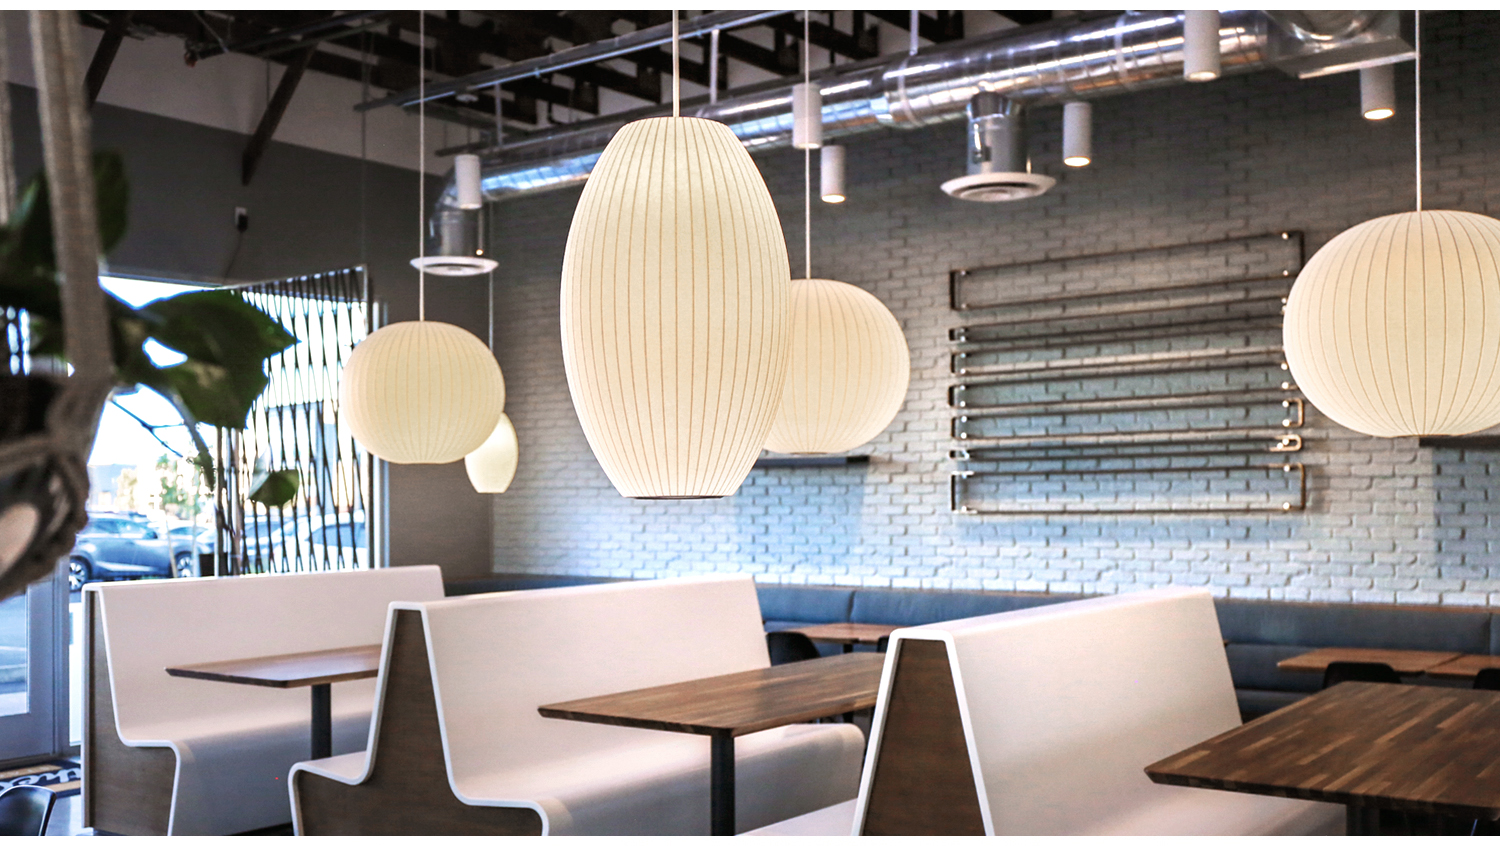 Hiive Creative The Goodwich Is A Top Restaurant Design In Las Vegas By Hiive Creative With A Fast Casual Vibe